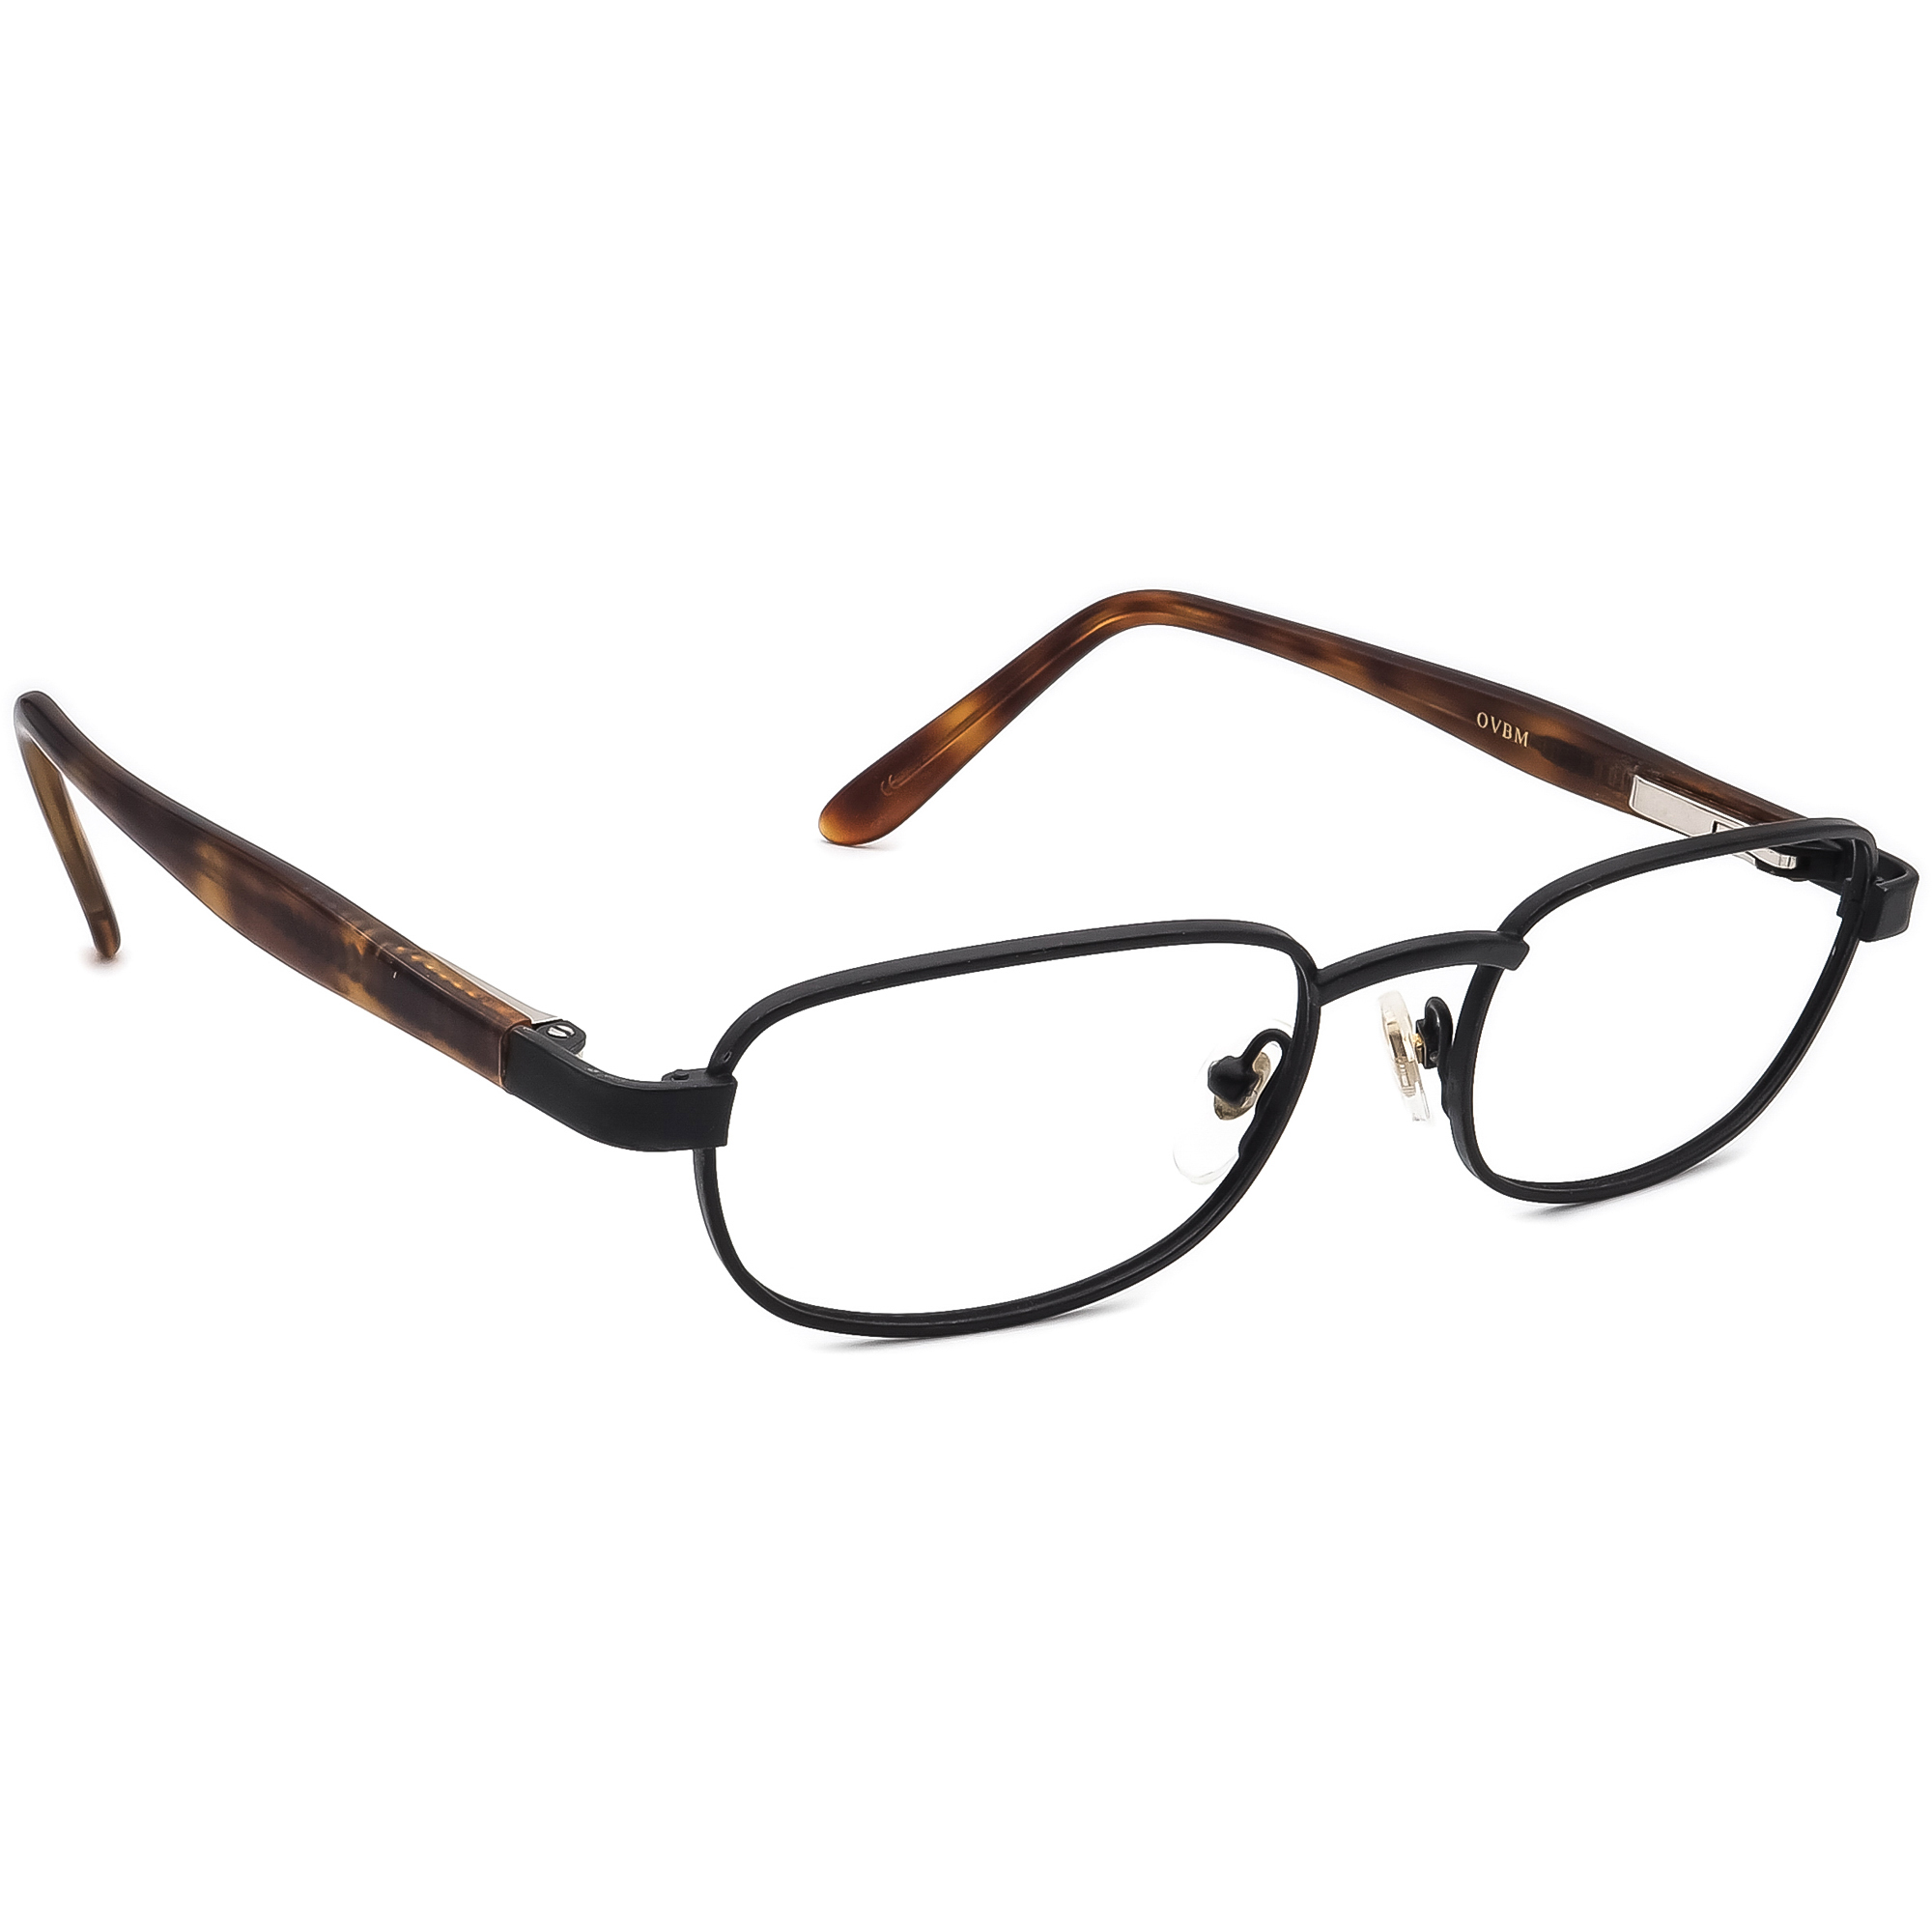 Bausch & Lomb (B&L) OVBM Sunglasses Frame Only